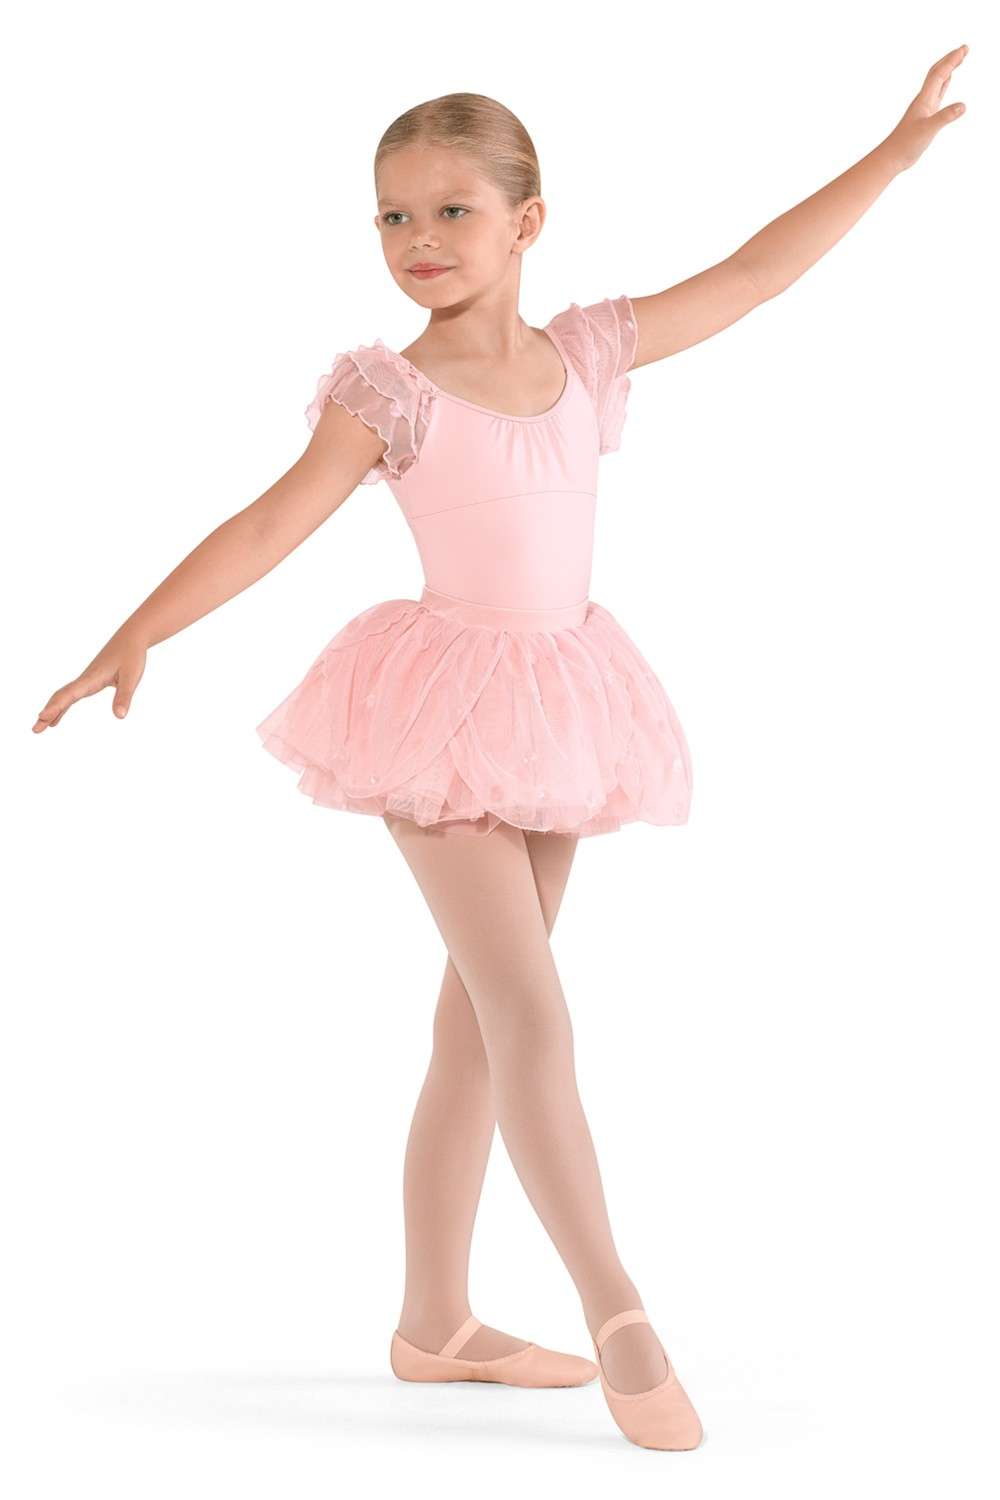 Petal Tutu Skirt Children's Dance Skirts